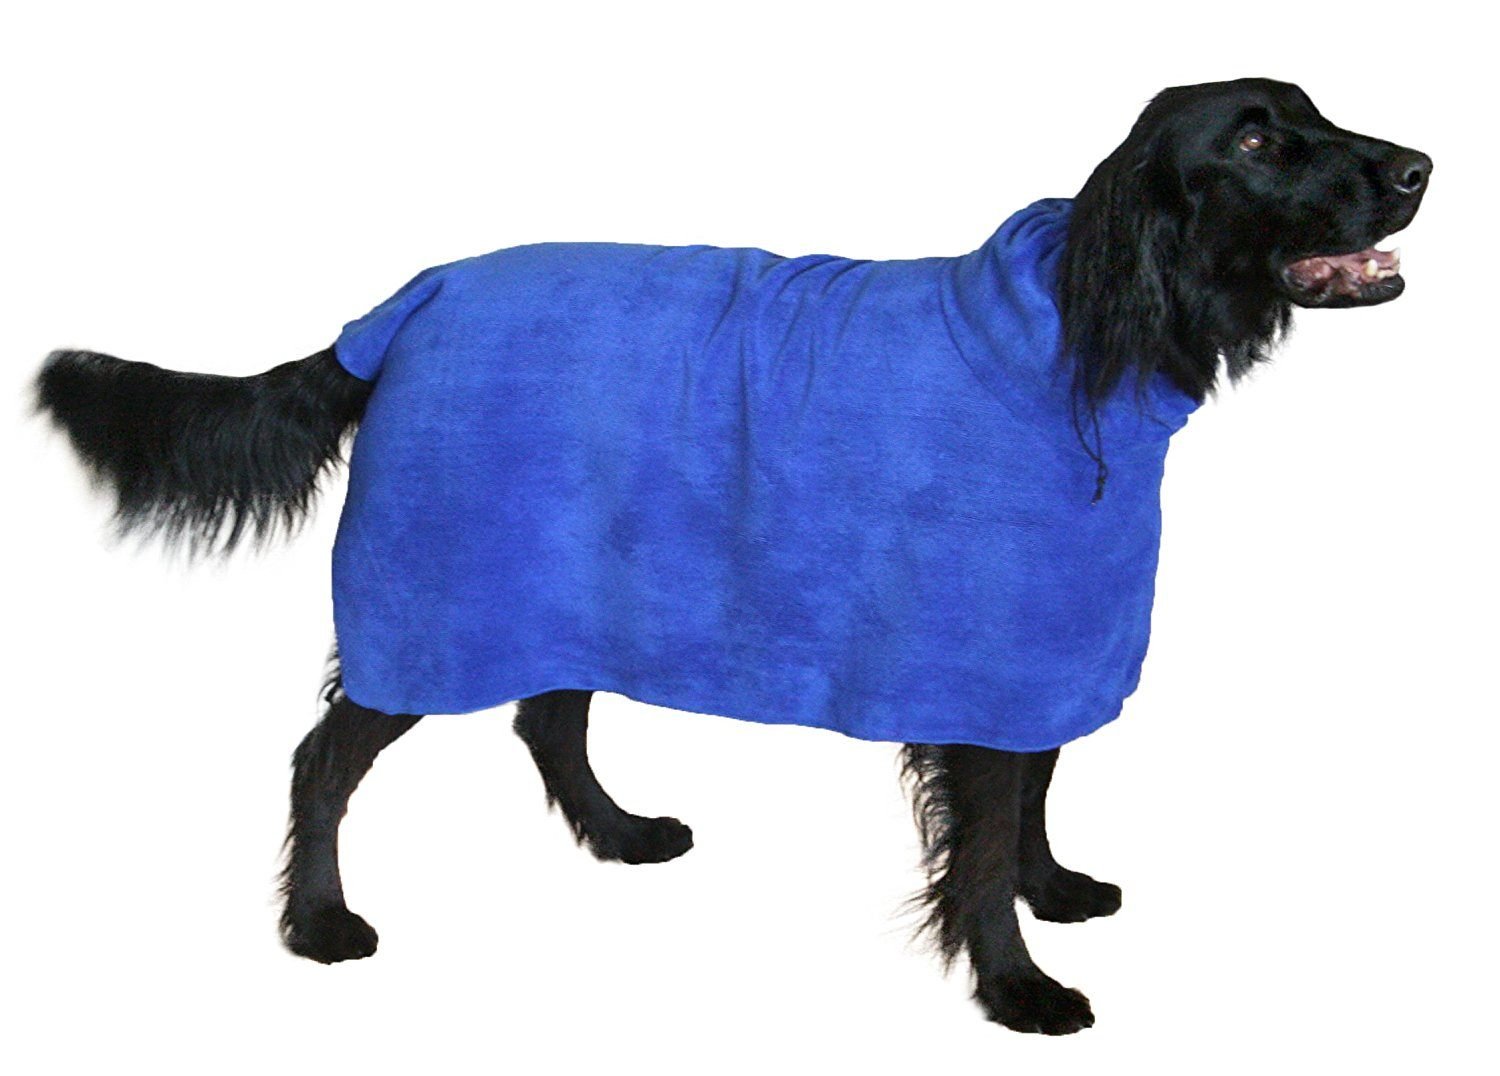 The Snuggly Dog Easy Wear Microfiber Dog Towel